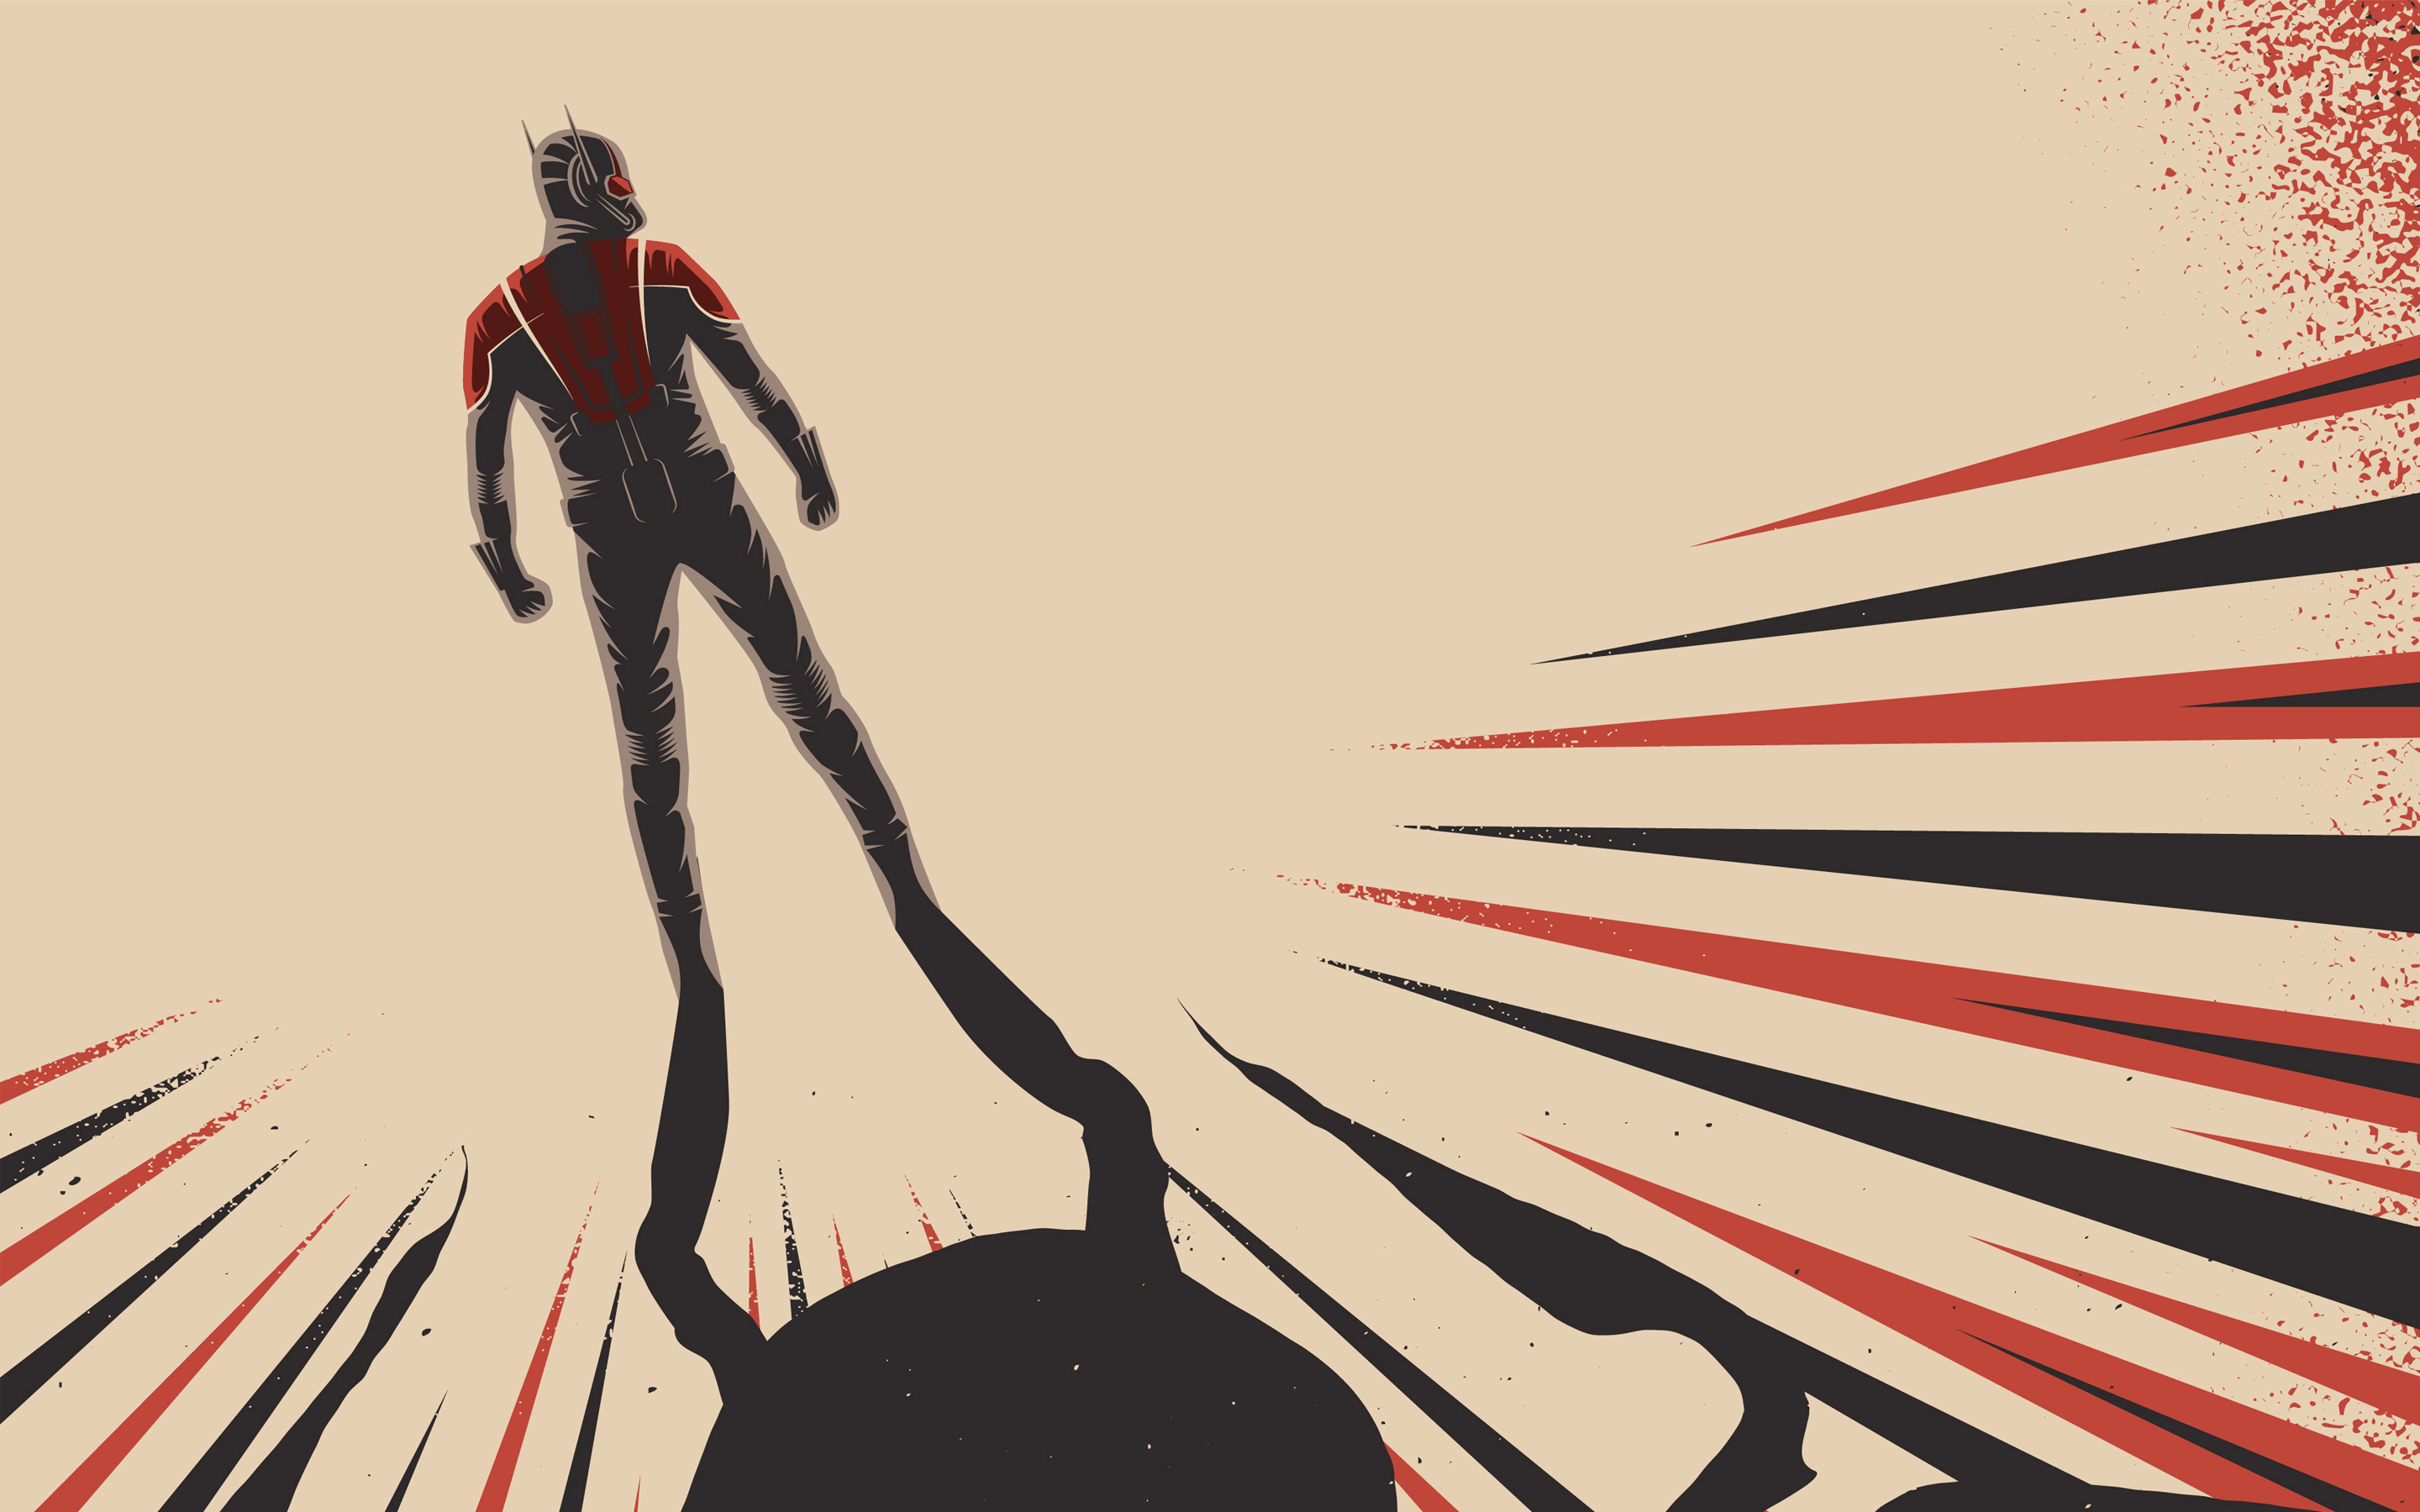 Ant Man Vintage Wallpapers HD Wallpapers 2880x1800